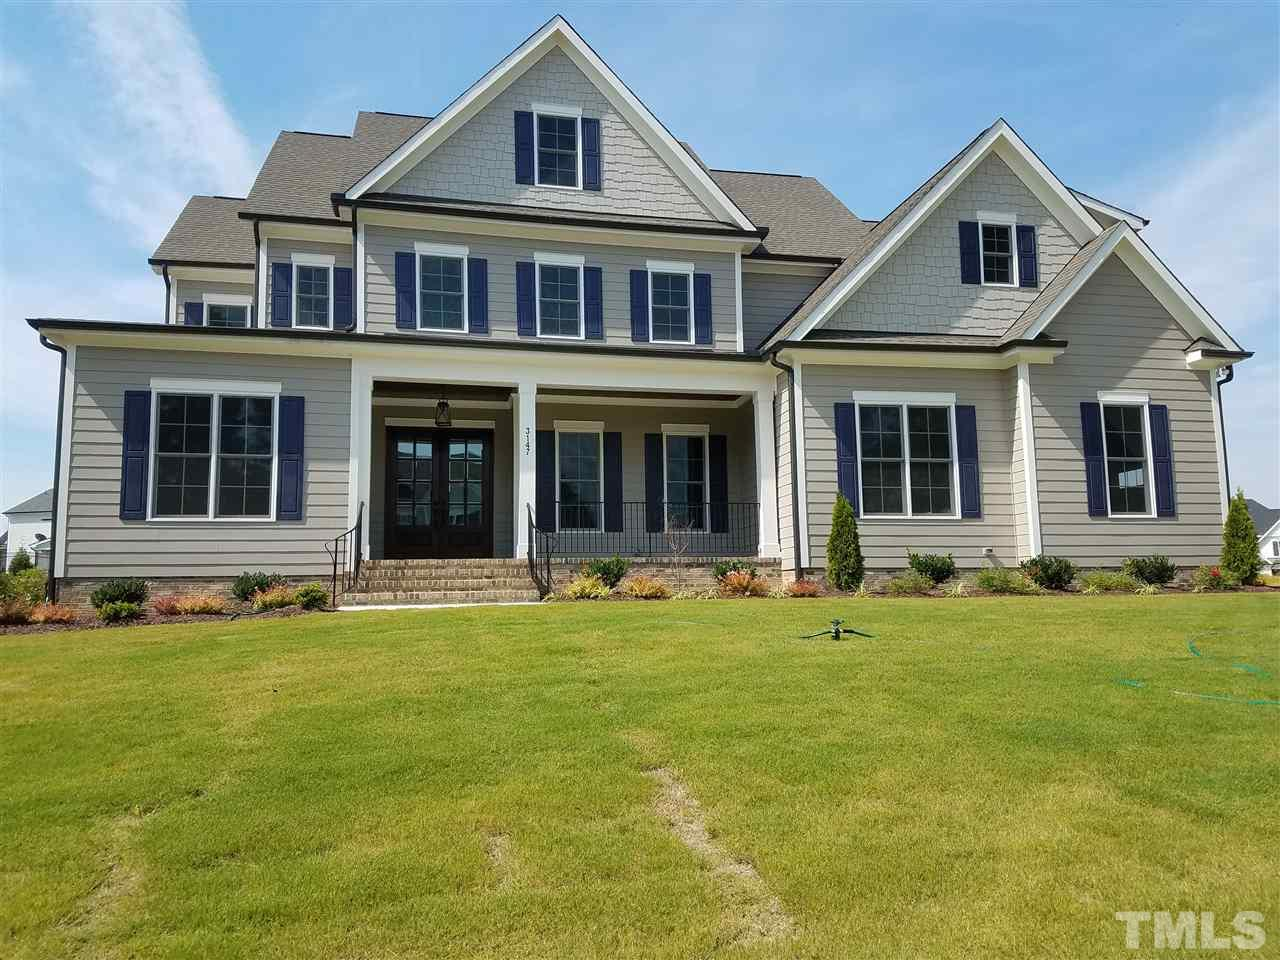 Beautiful custom built home by Legacy Custom Homes.Site finished hardwoods on first floor, stairs, and hall upstairs.  Custom designed kitchen with commercial grade appliances.  kit/breakfast/family all open.  Huge center island with.  Custom shelves and trim work through out.  Dining with coffered ceiling.  Custom closet designs. Free standing tub in owners suite. 10 ft ceilings on first floor.  Over sized 3 car garage, plenty of room for workshop.  Very level home site with great back yard and patio